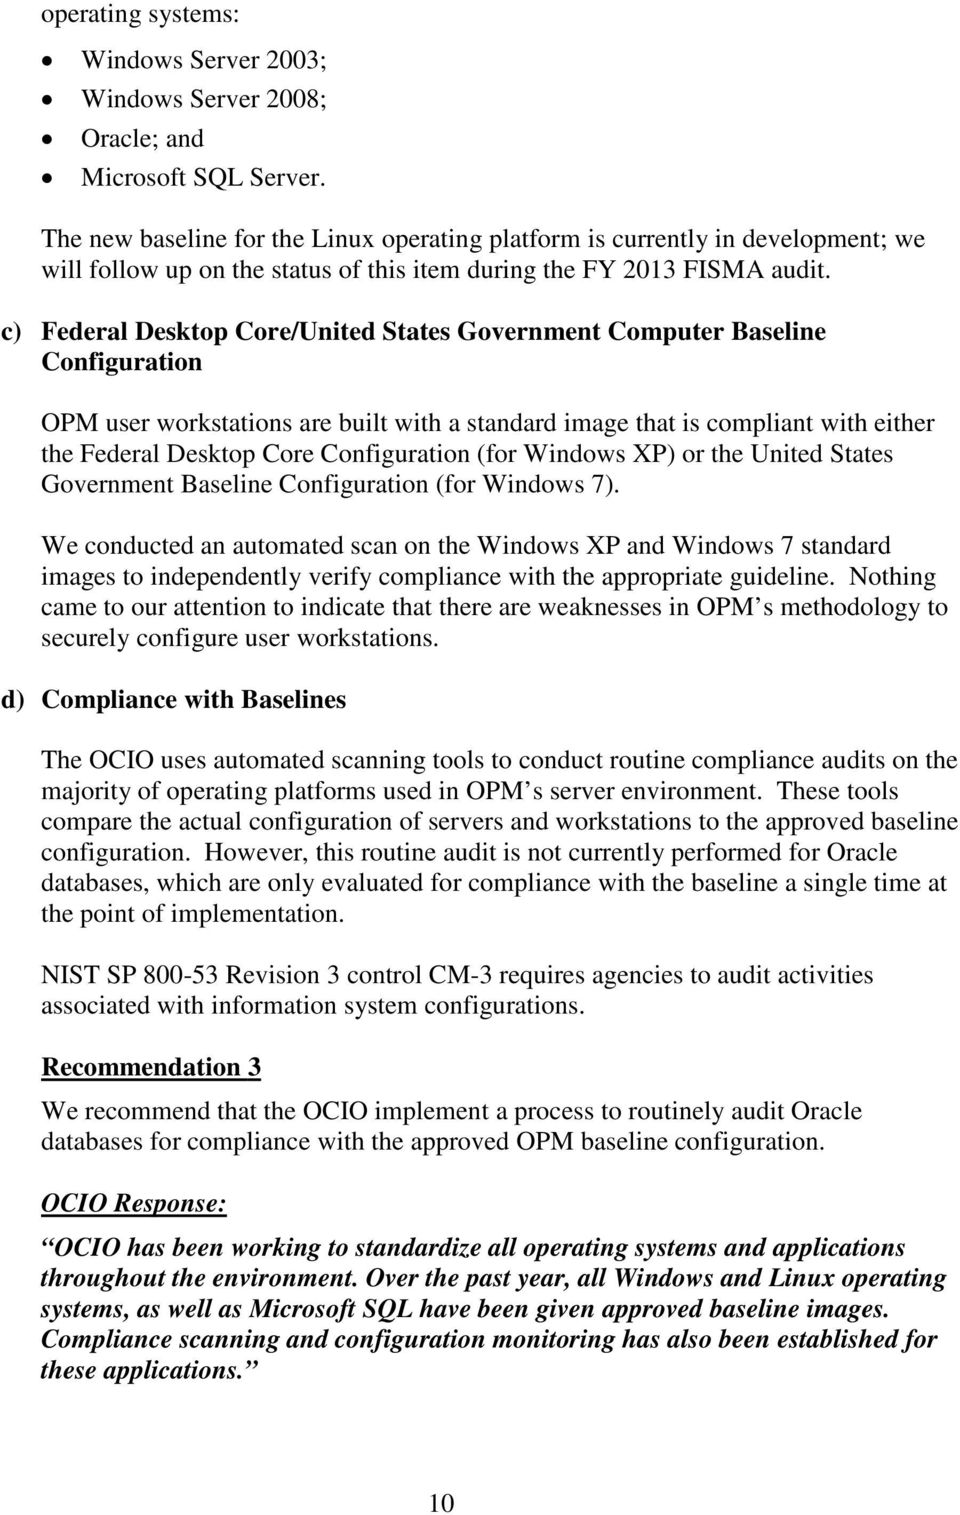 c) Federal Desktop Core/United States Government Computer Baseline Configuration OPM user workstations are built with a standard image that is compliant with either the Federal Desktop Core